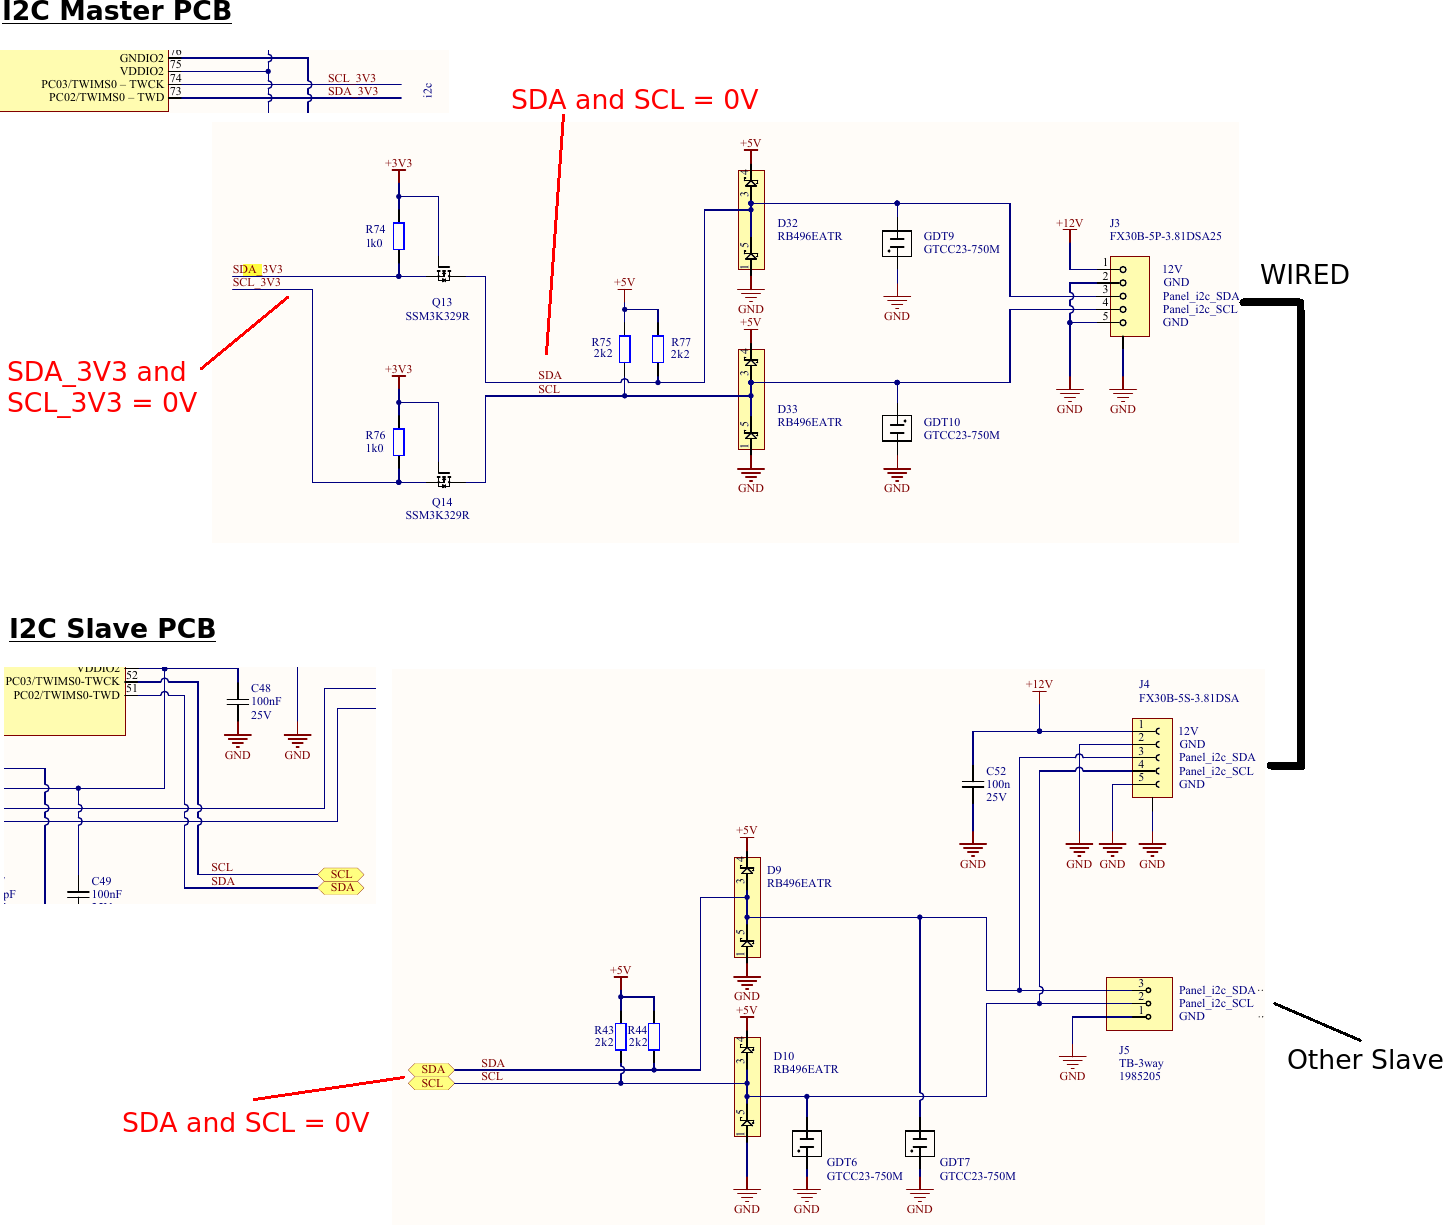 Dreaded I2C bus stuck LOW, even with basic Atmel example projects